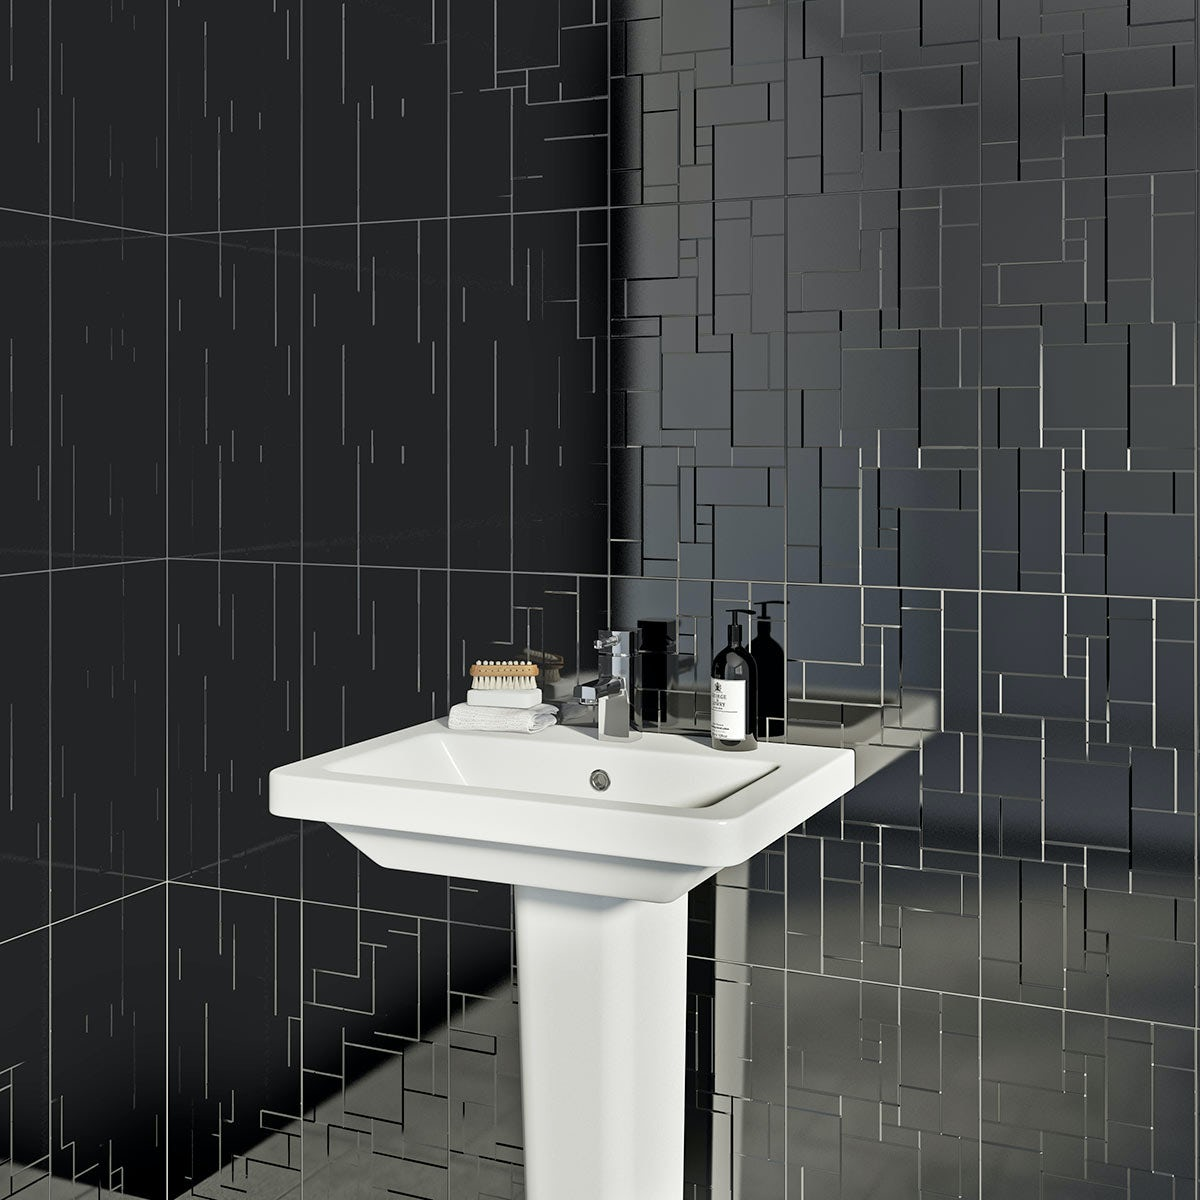 British Ceramic Tile Pure black structure gloss tile 248mm x 498mm